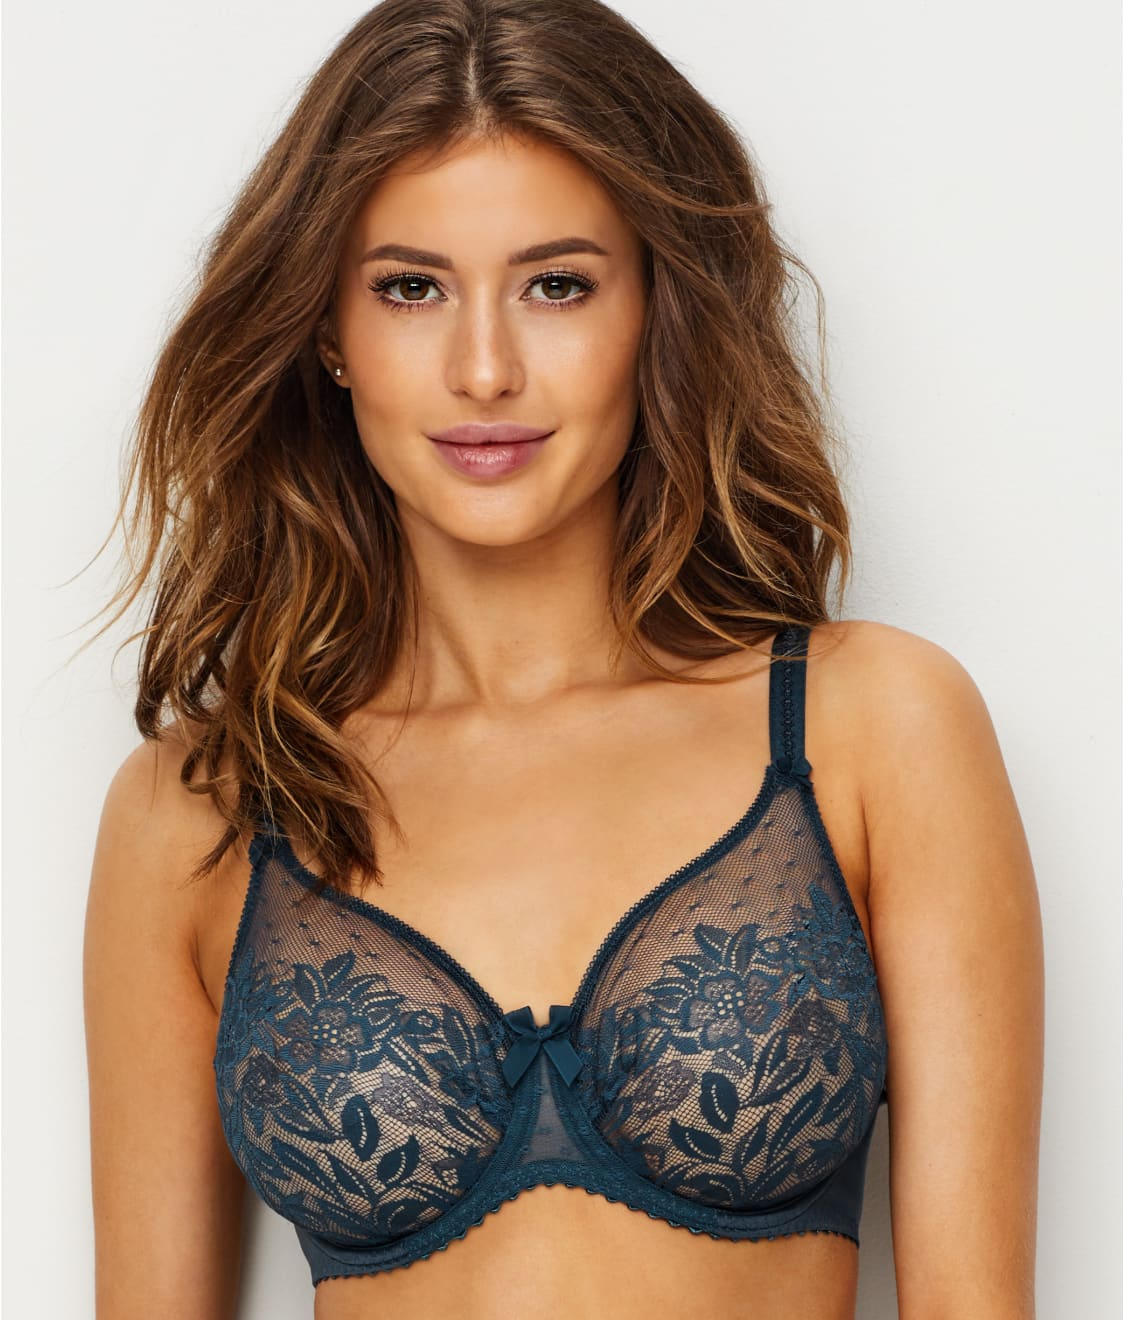 ef0ad5adcc10a See Divine Lace Bra in Submarine